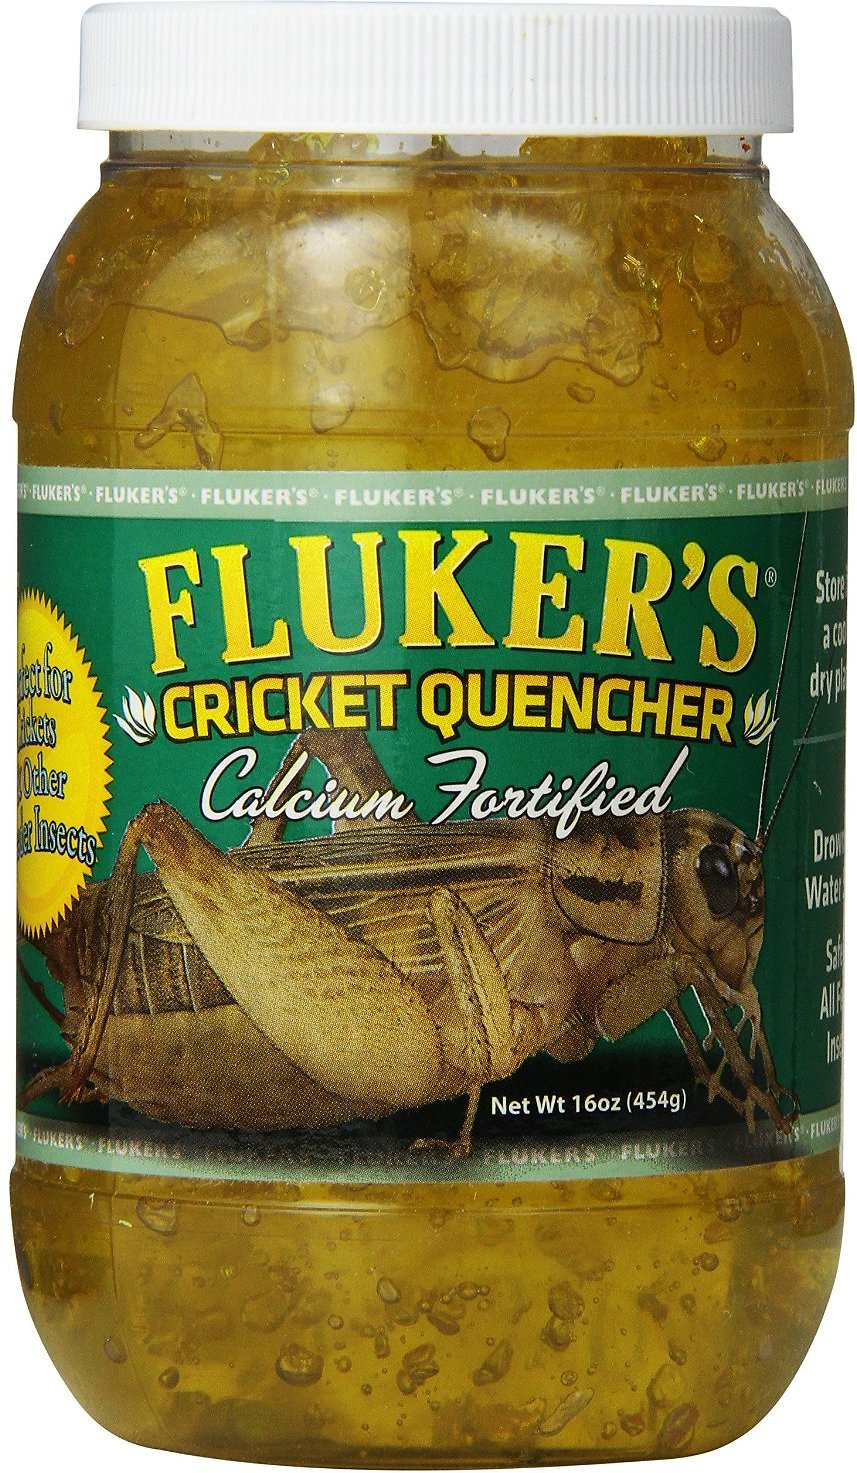 Fluker's Cricket Quencher Calcium Fortified Reptile Suppliment Image